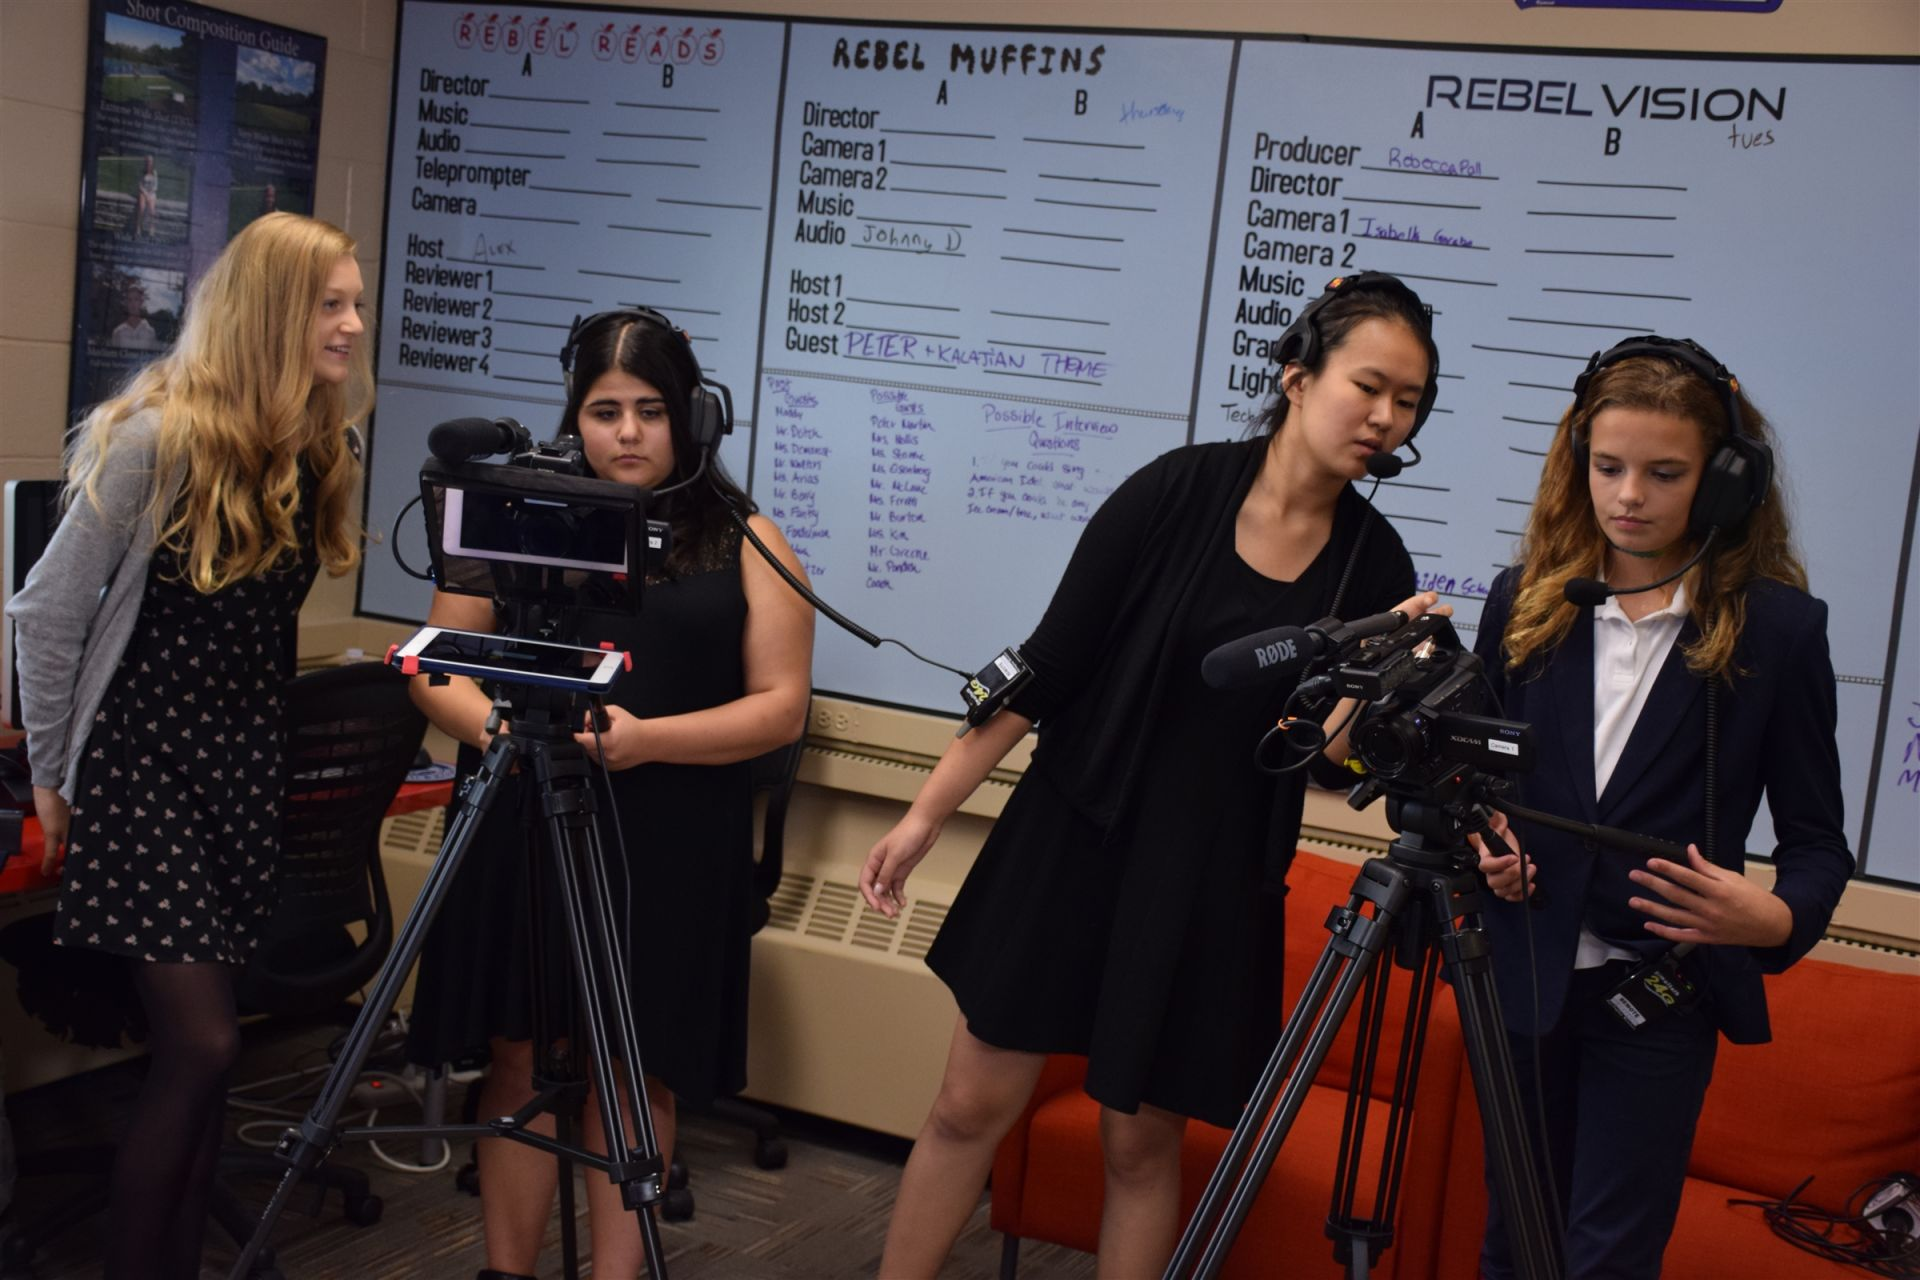 Upper and Middle School students work together in the RebelVision Studio, a fully equipped television production studio.